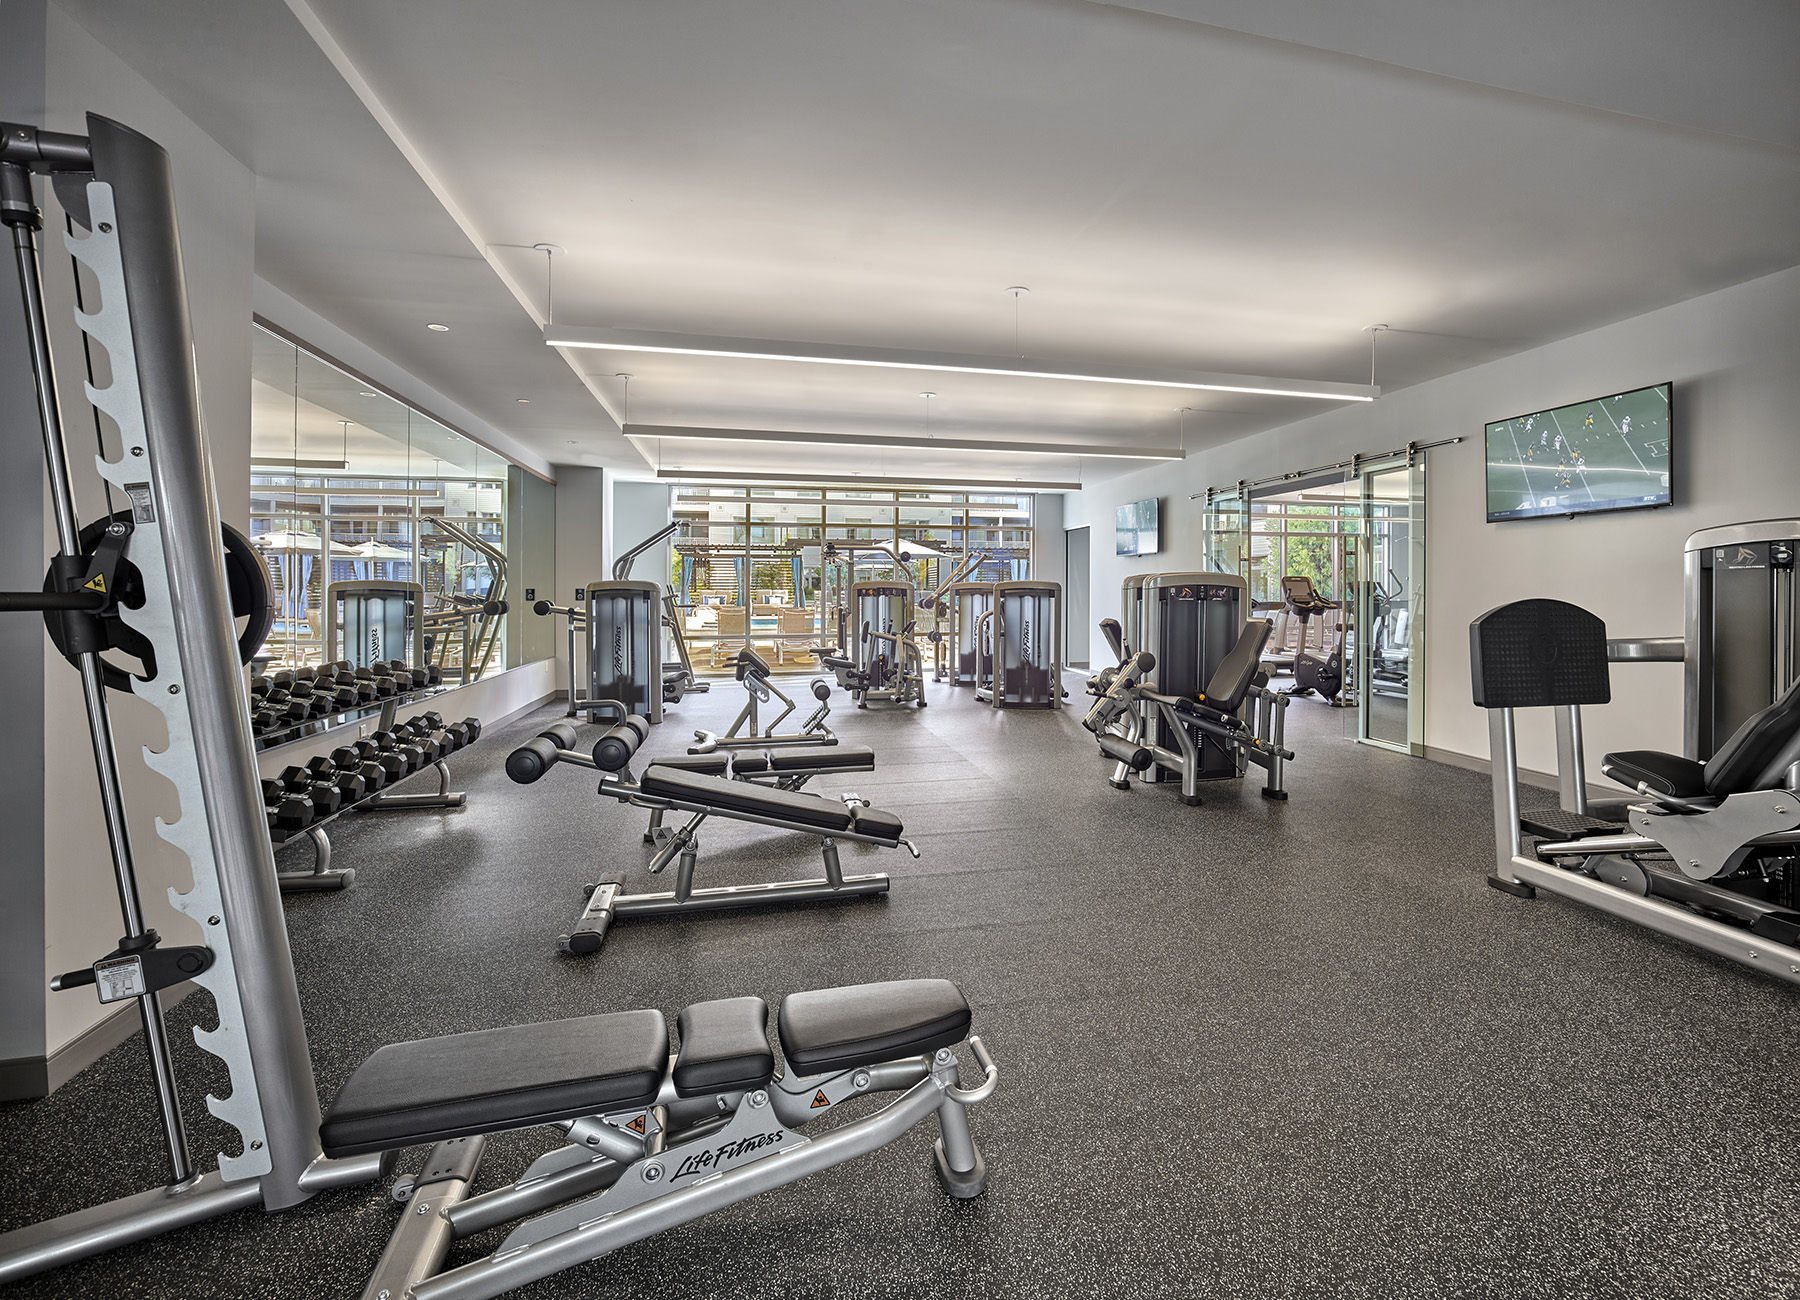 Fitness center with large windows and strength equipment